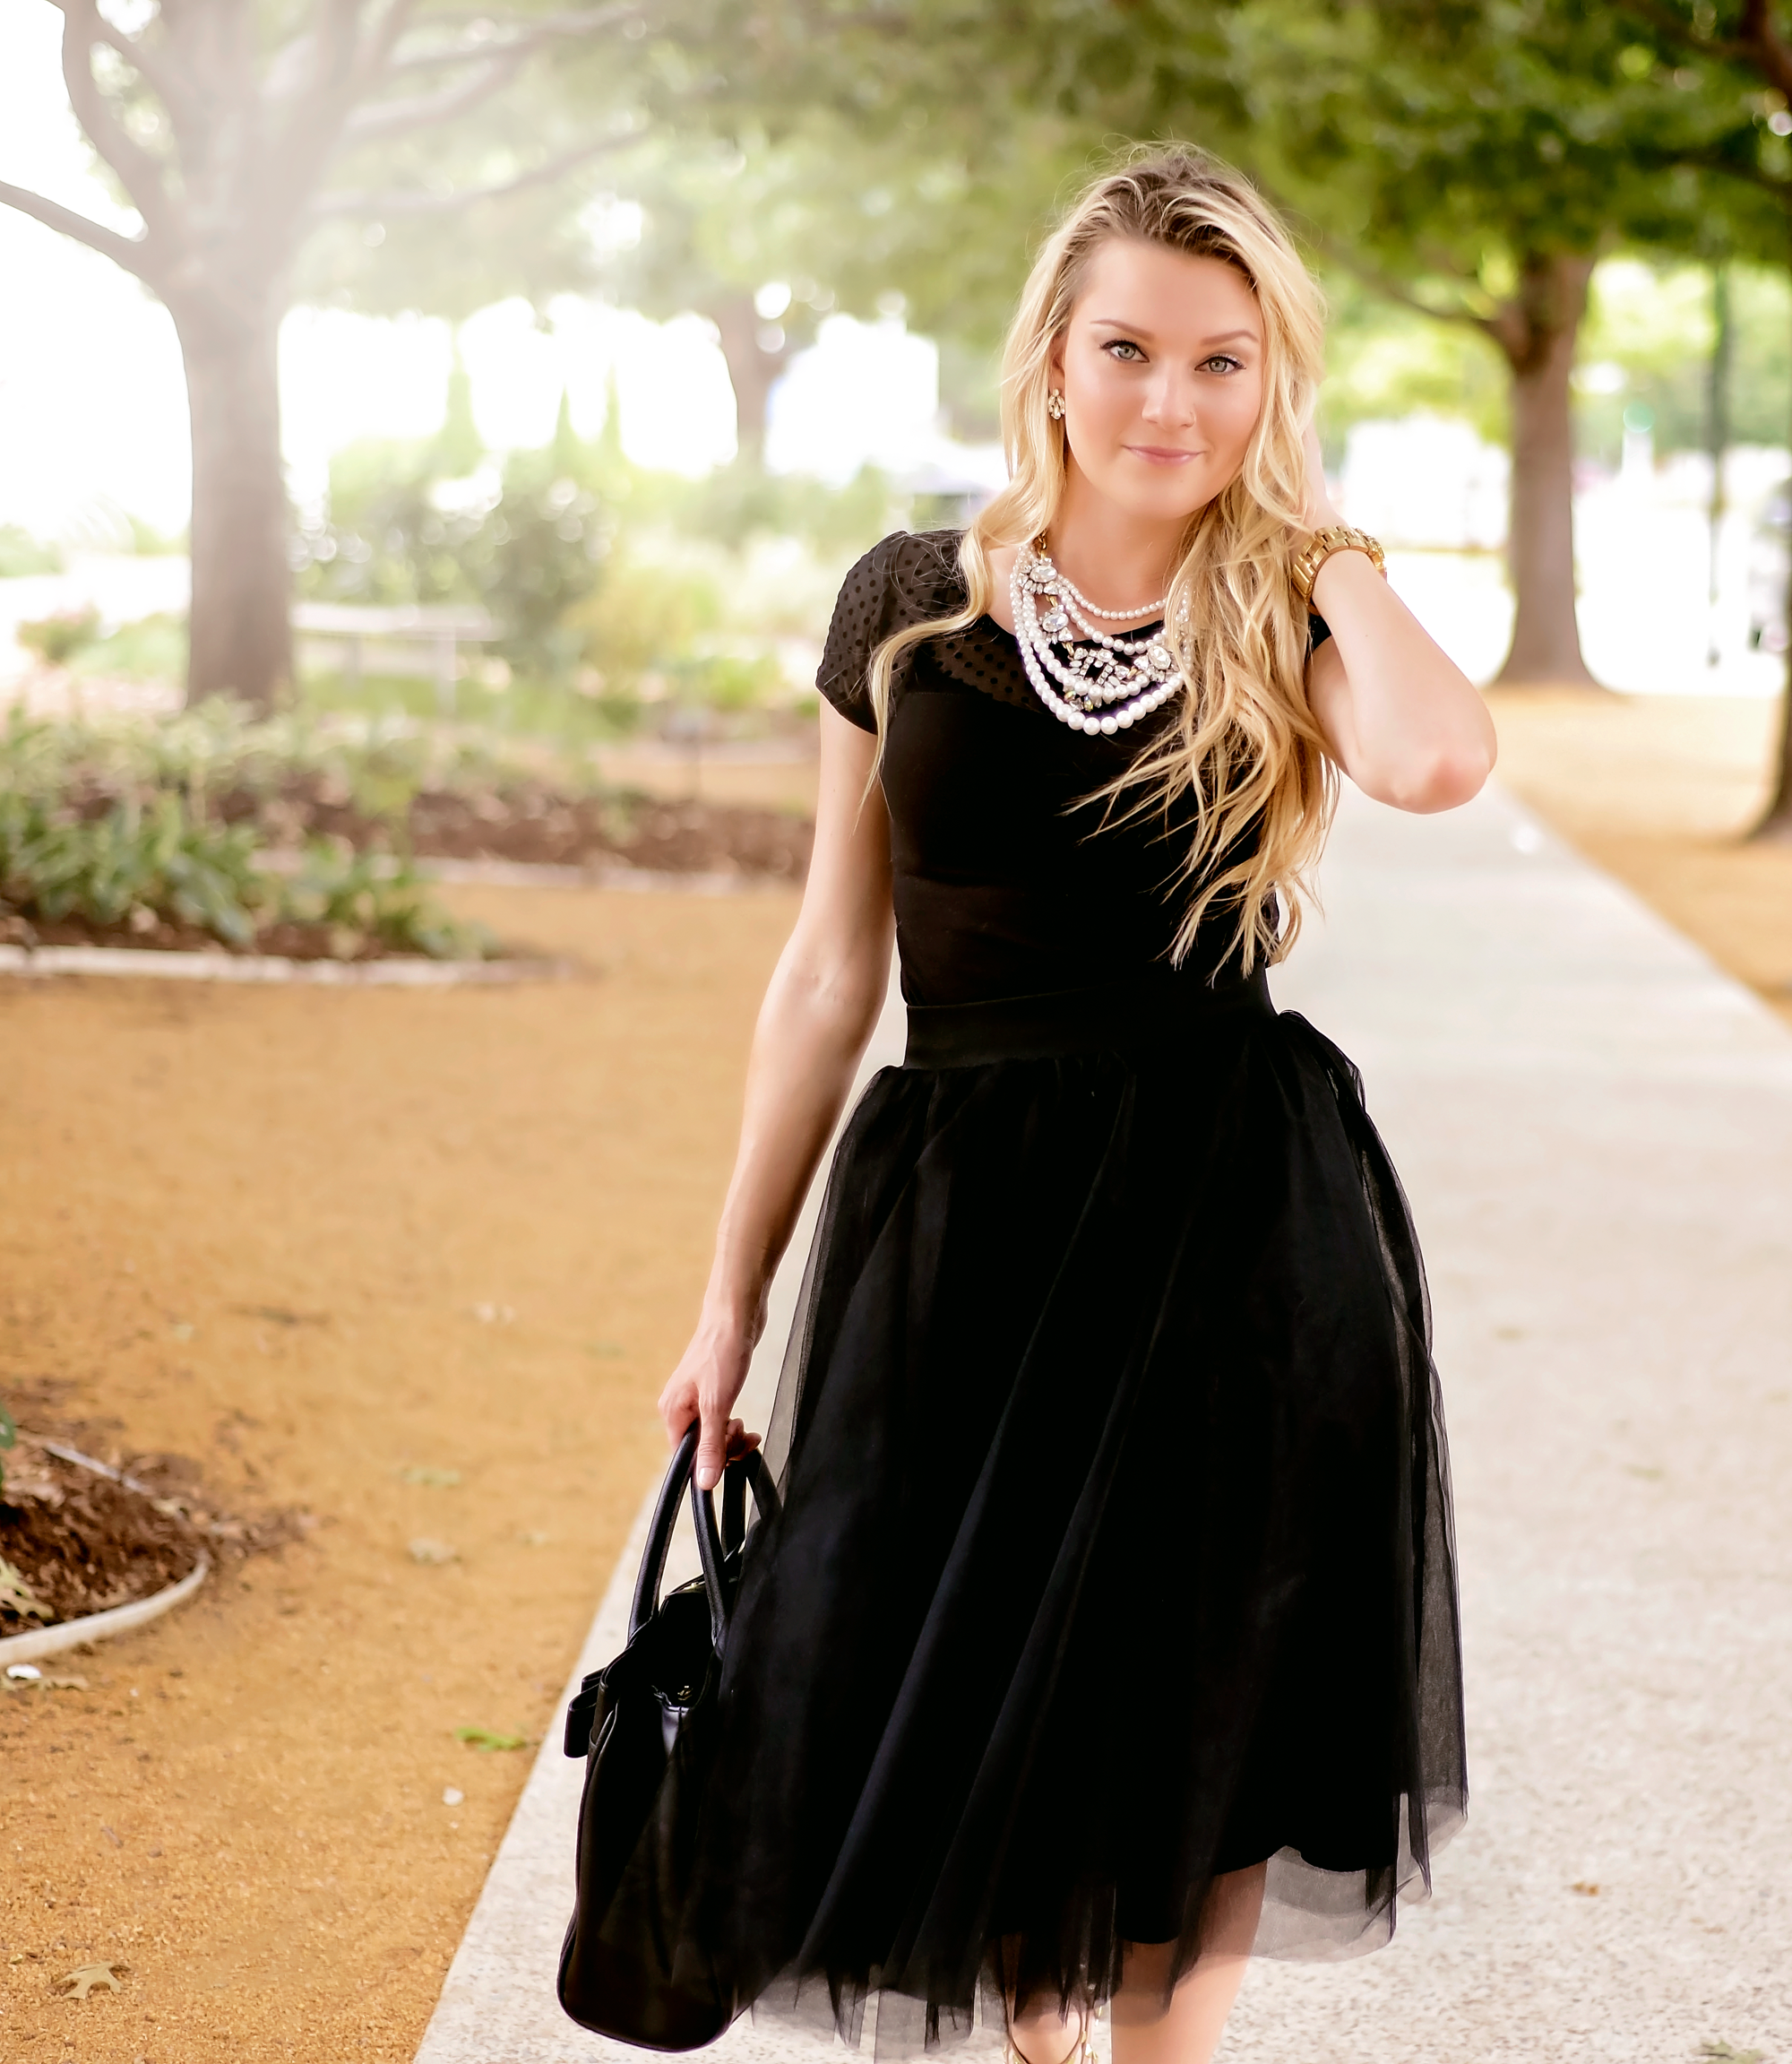 Glam & Chic Audrey inspired #OOTD The Chic Blonde